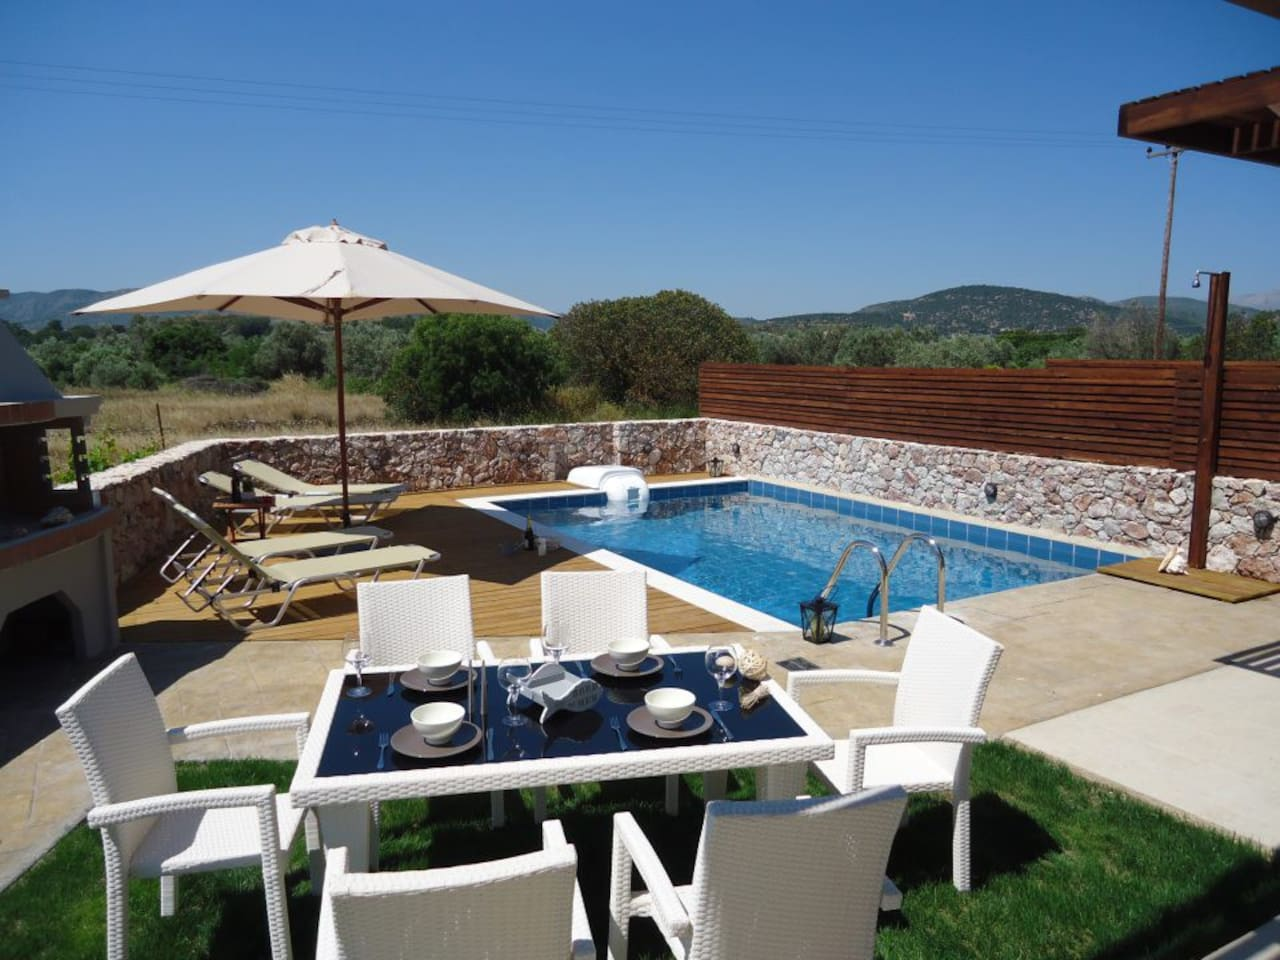 Private pool area and outdoor facilities